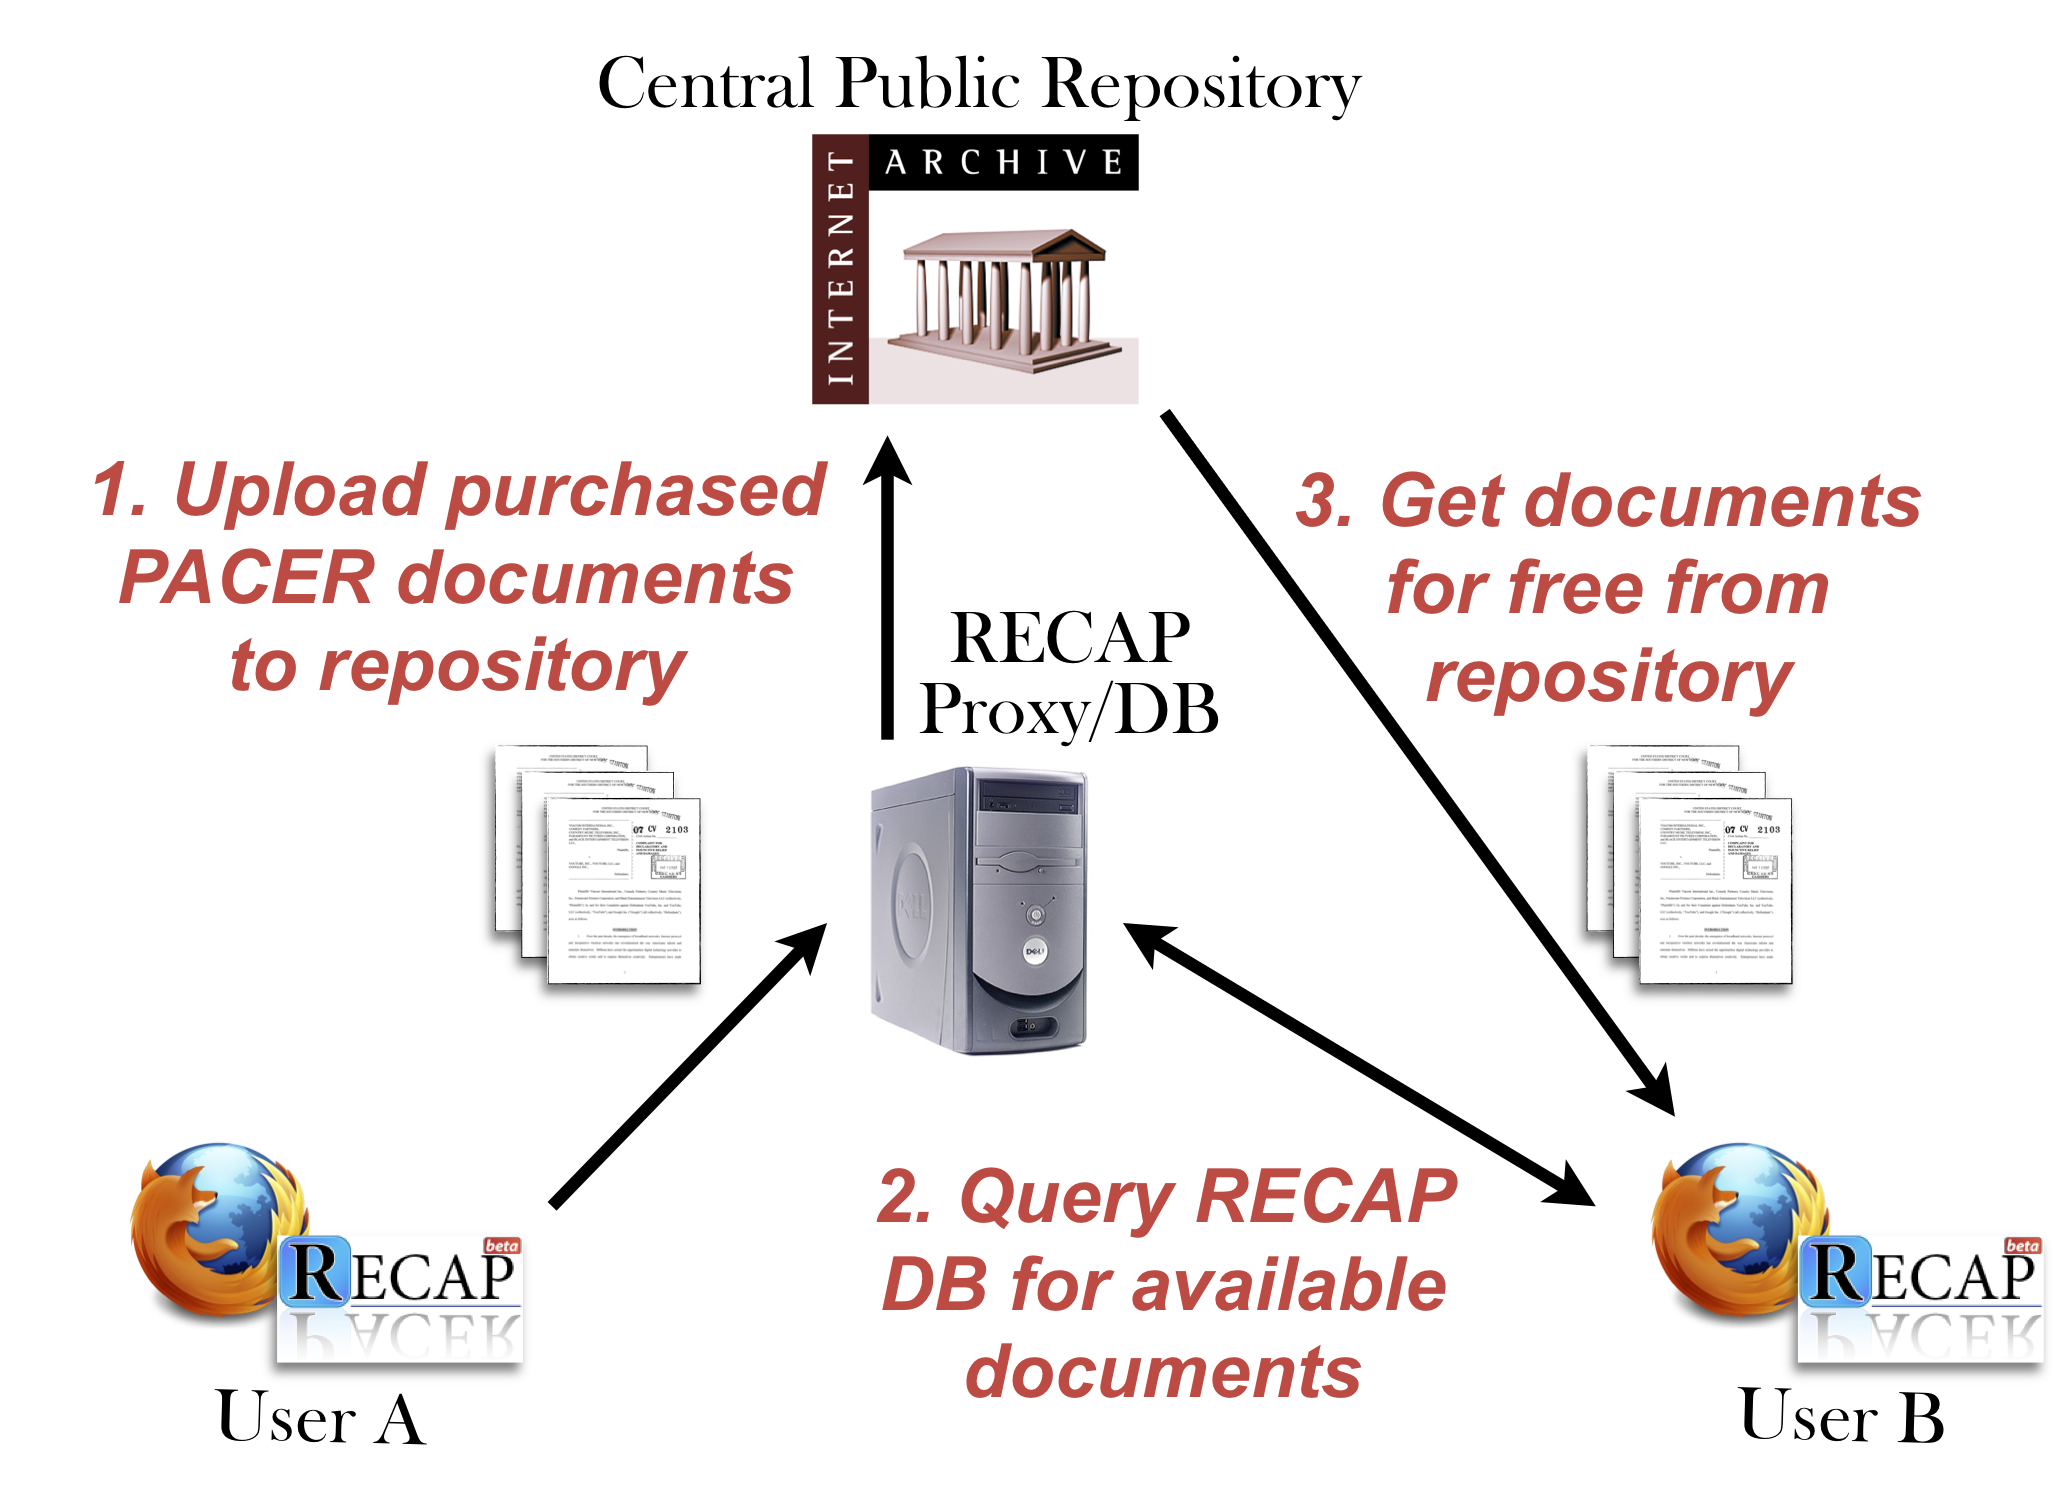 RECAP document sharing model